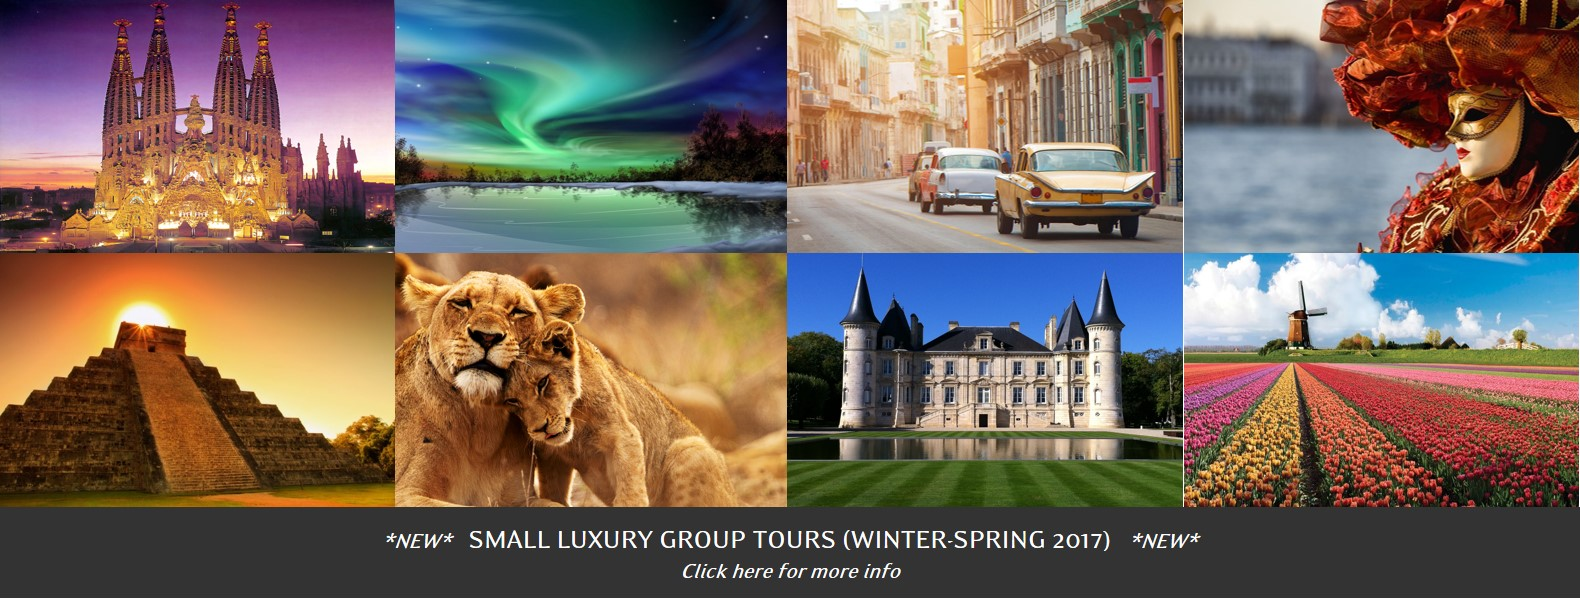 Small Luxury Group Tours